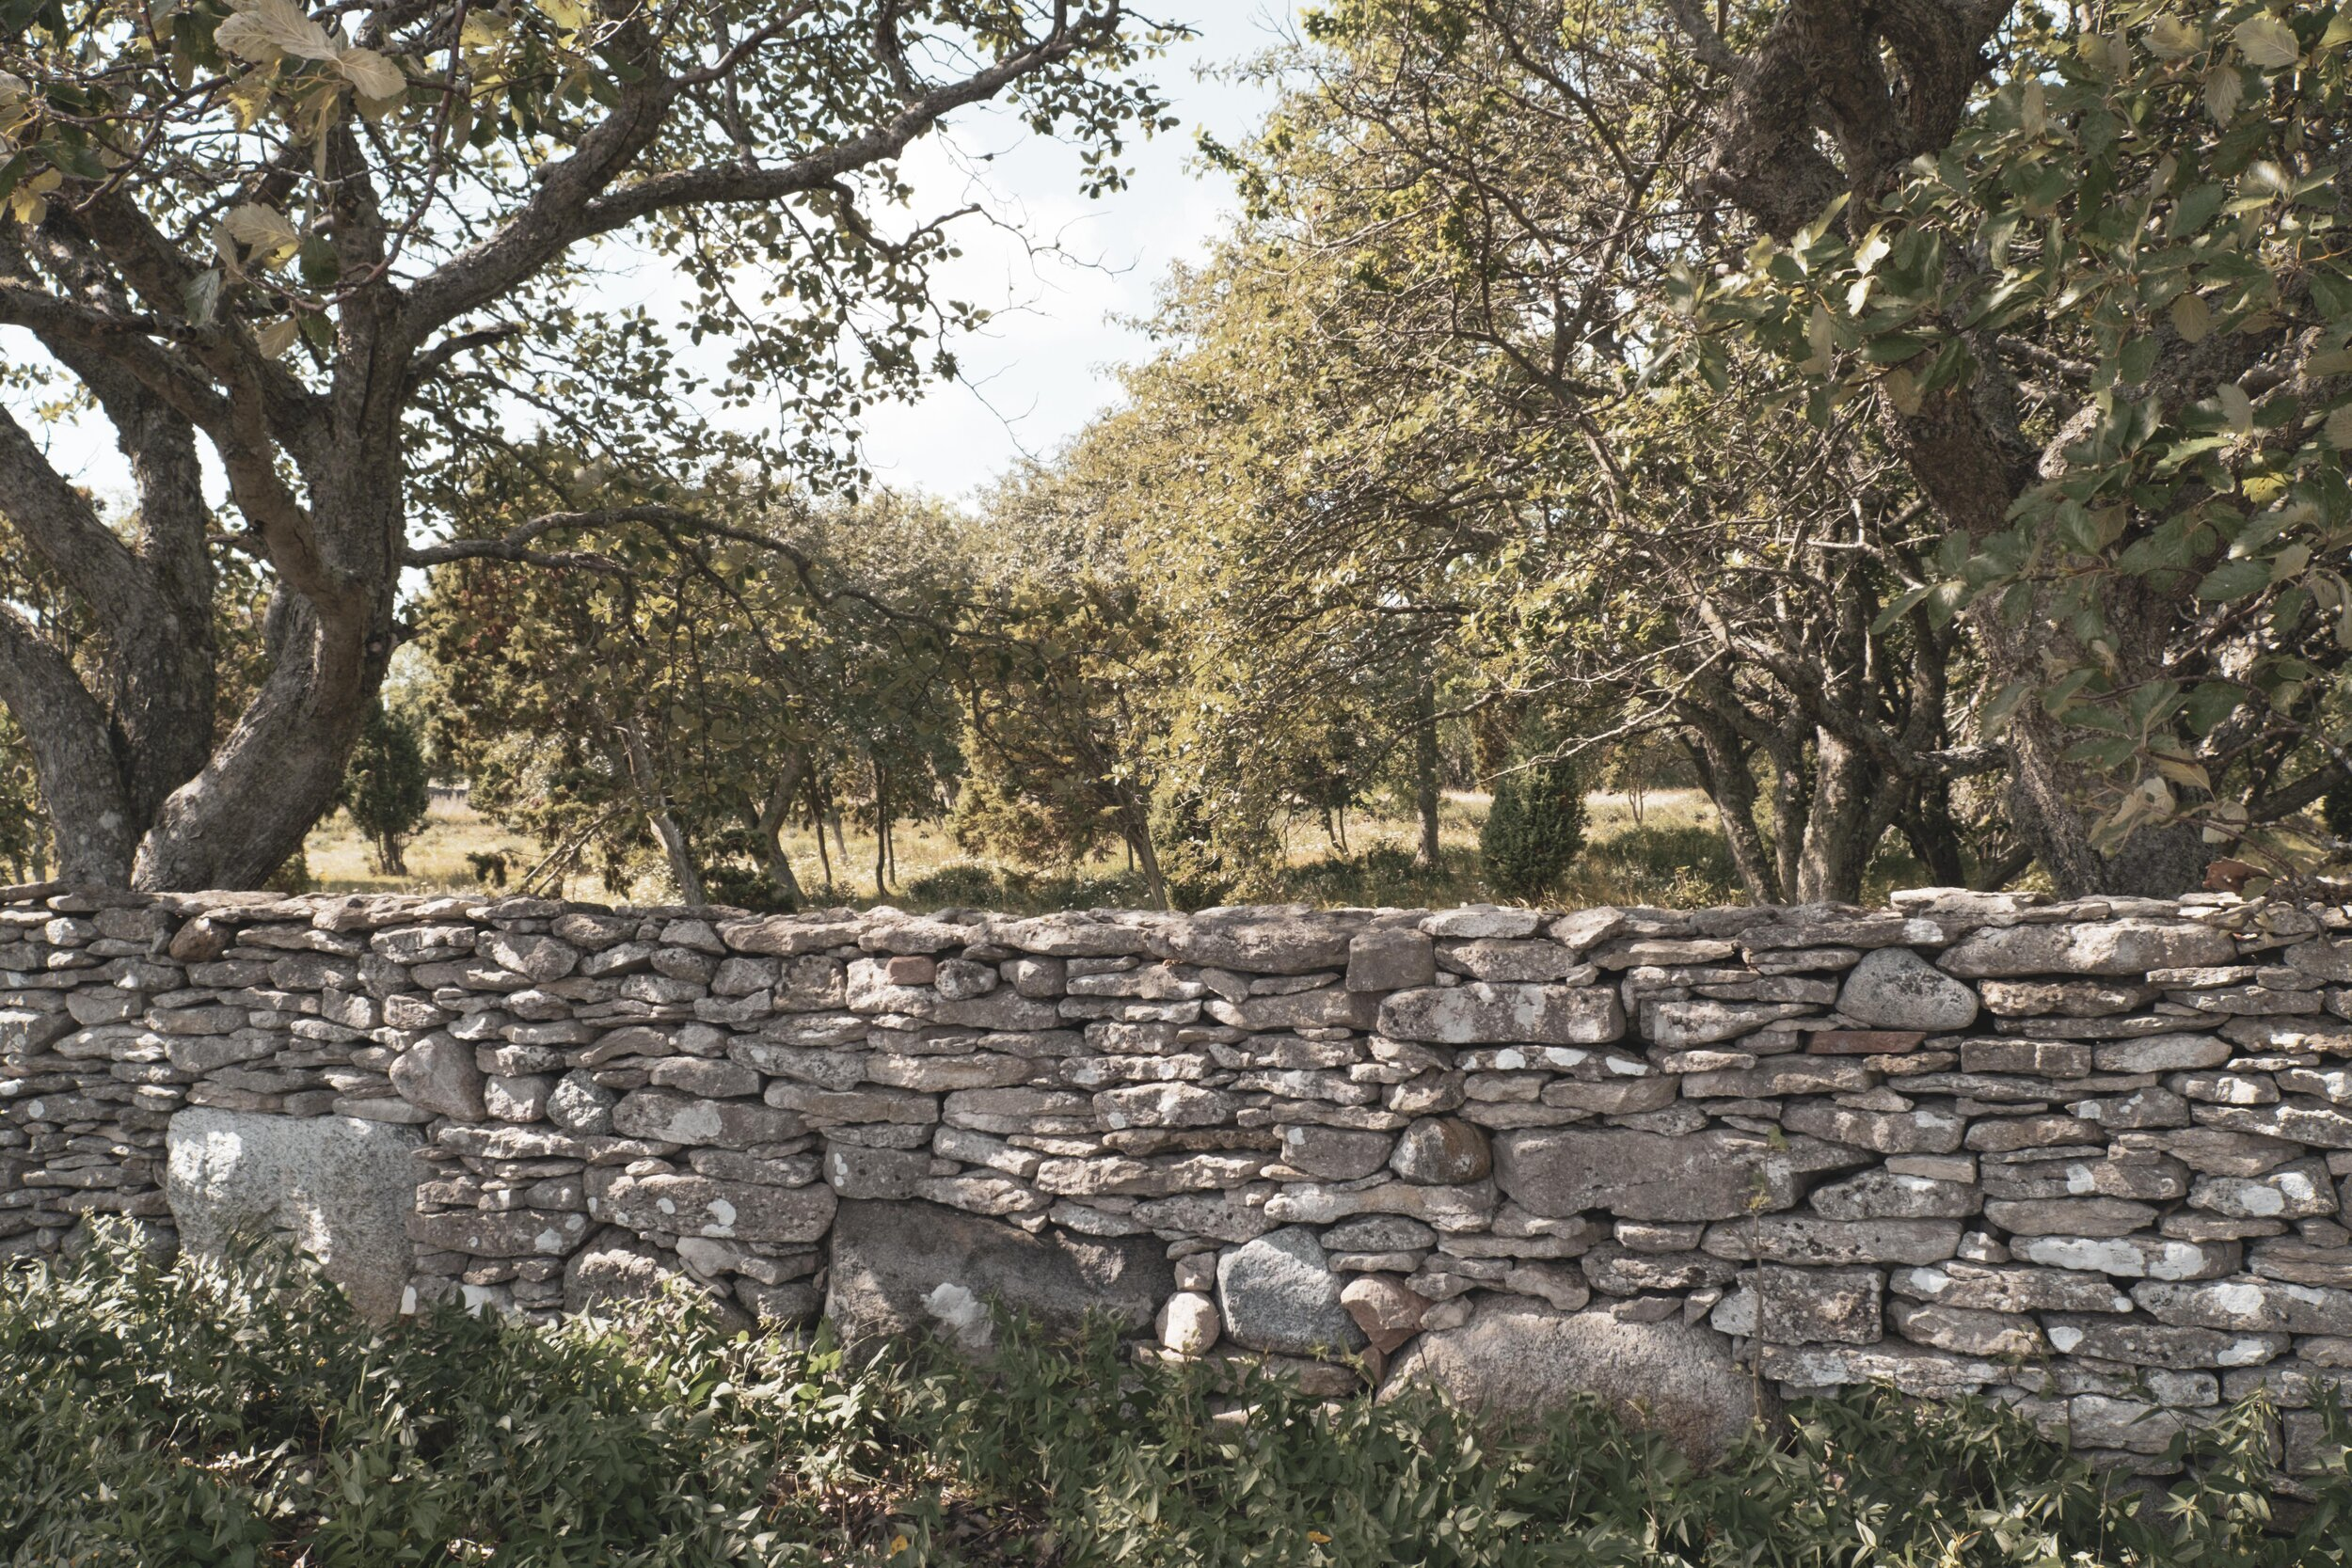 One Fårö-classic is these fences made out of piles of stone. Originally they were made to keep in the sheep but now they also serve as protection against the wind.